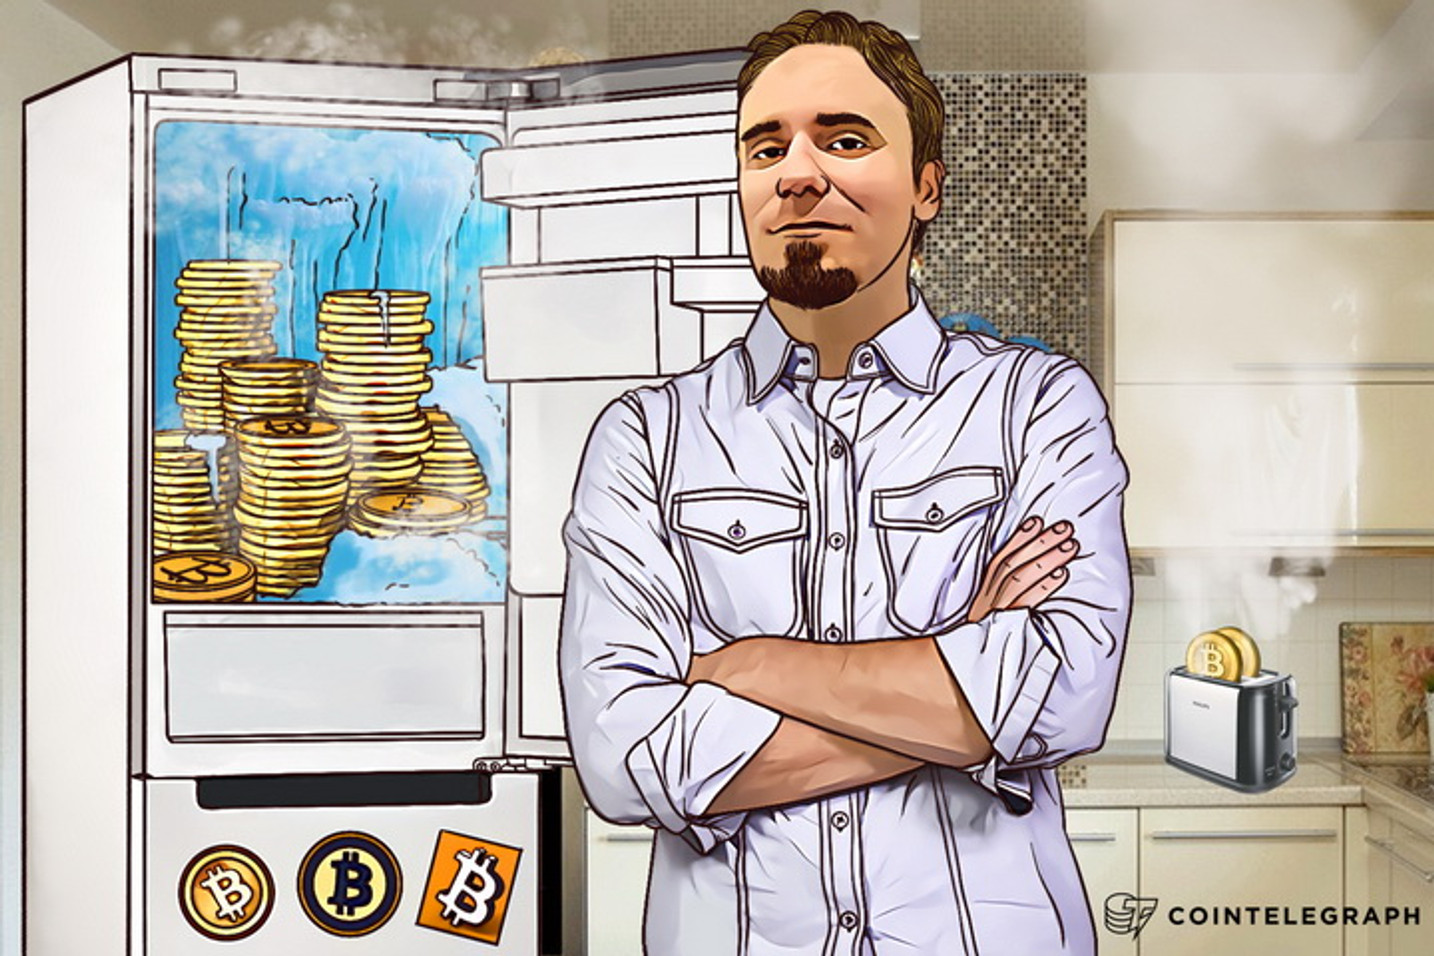 All Bitcoin Exchanges Lax on Security, Should Get Rid of Hot Wallets